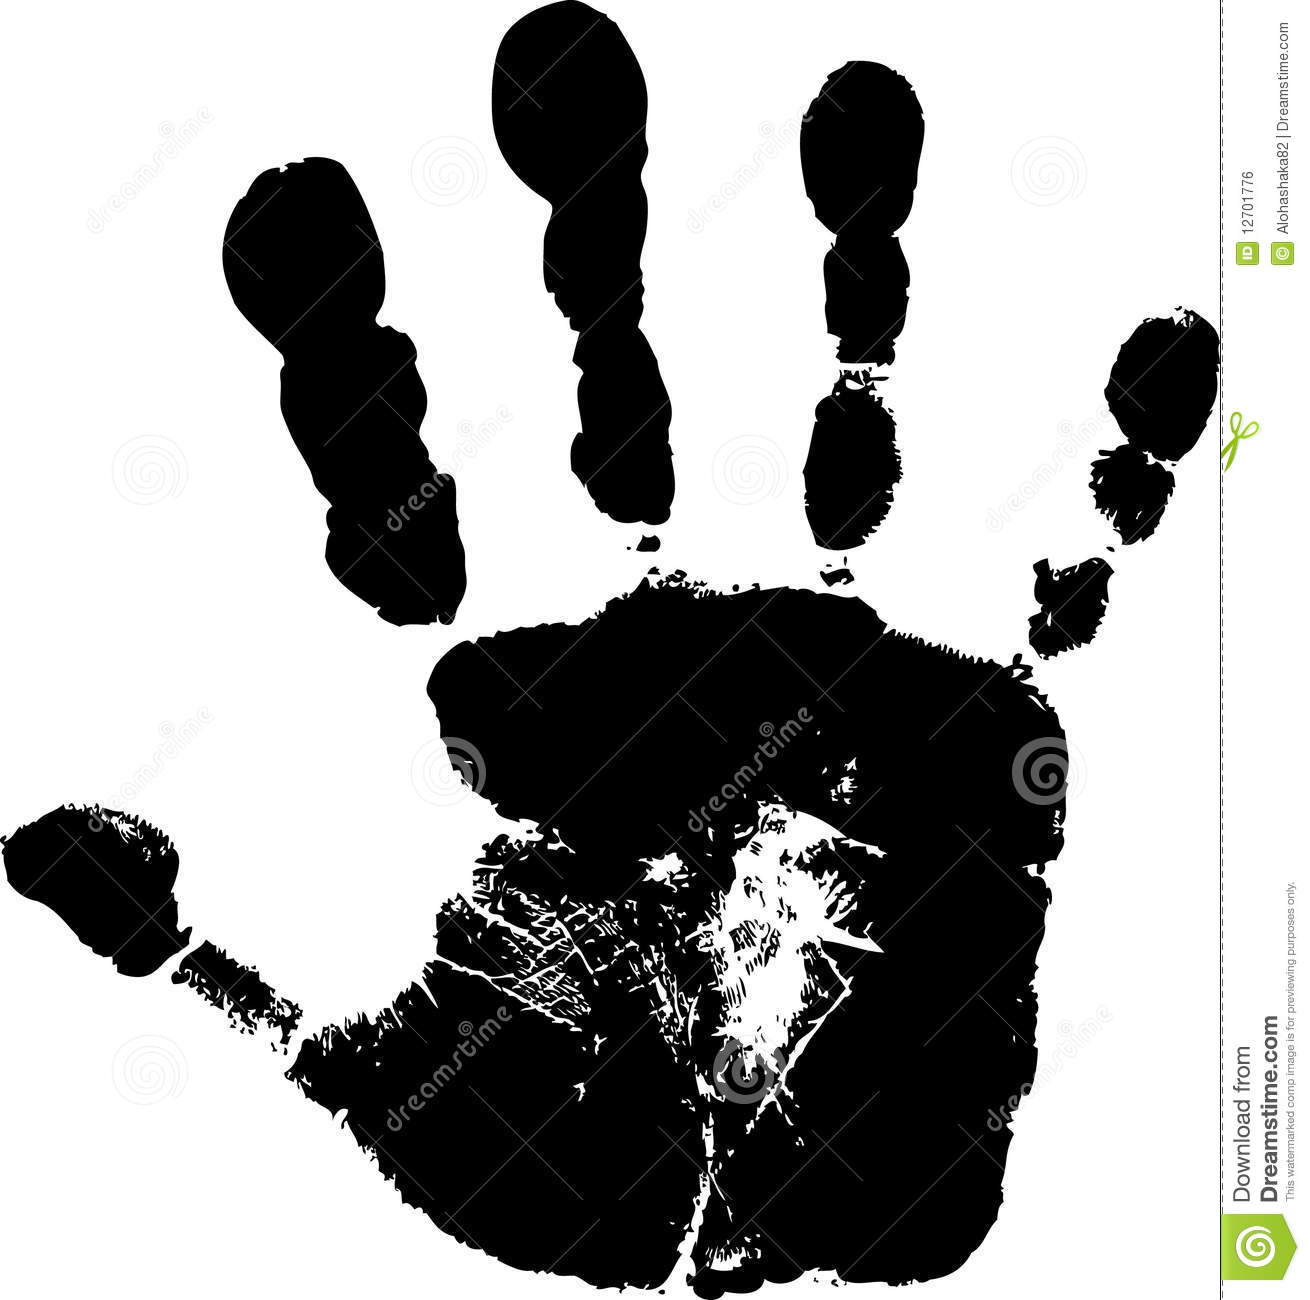 Child s handprint 2 royalty free stock image image 12701776